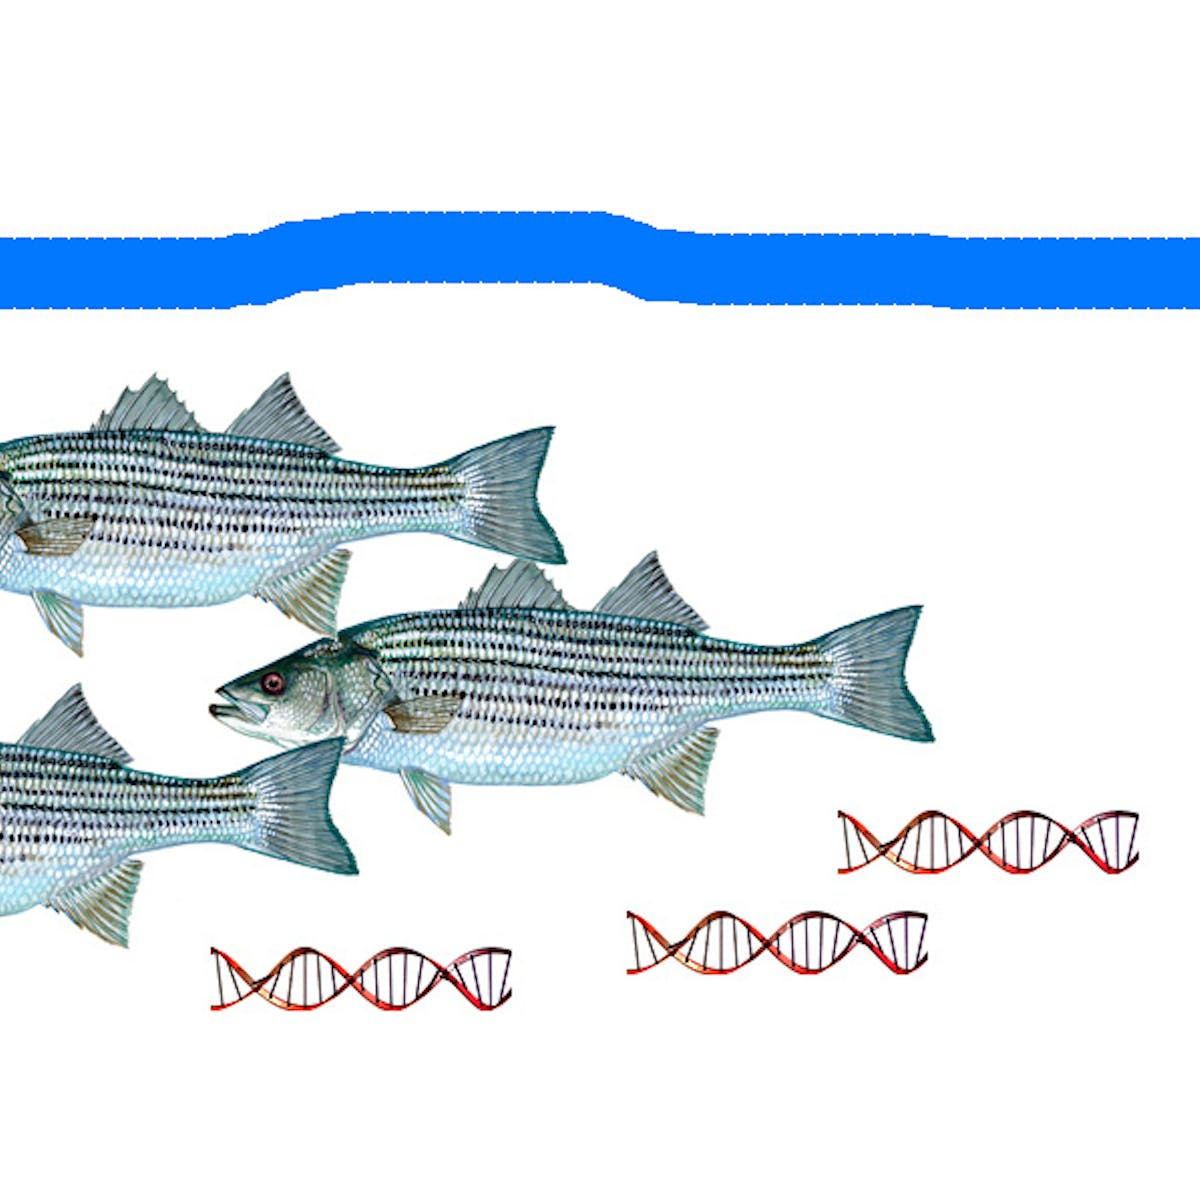 Fishing for DNA: Free-floating eDNA identifies presence and